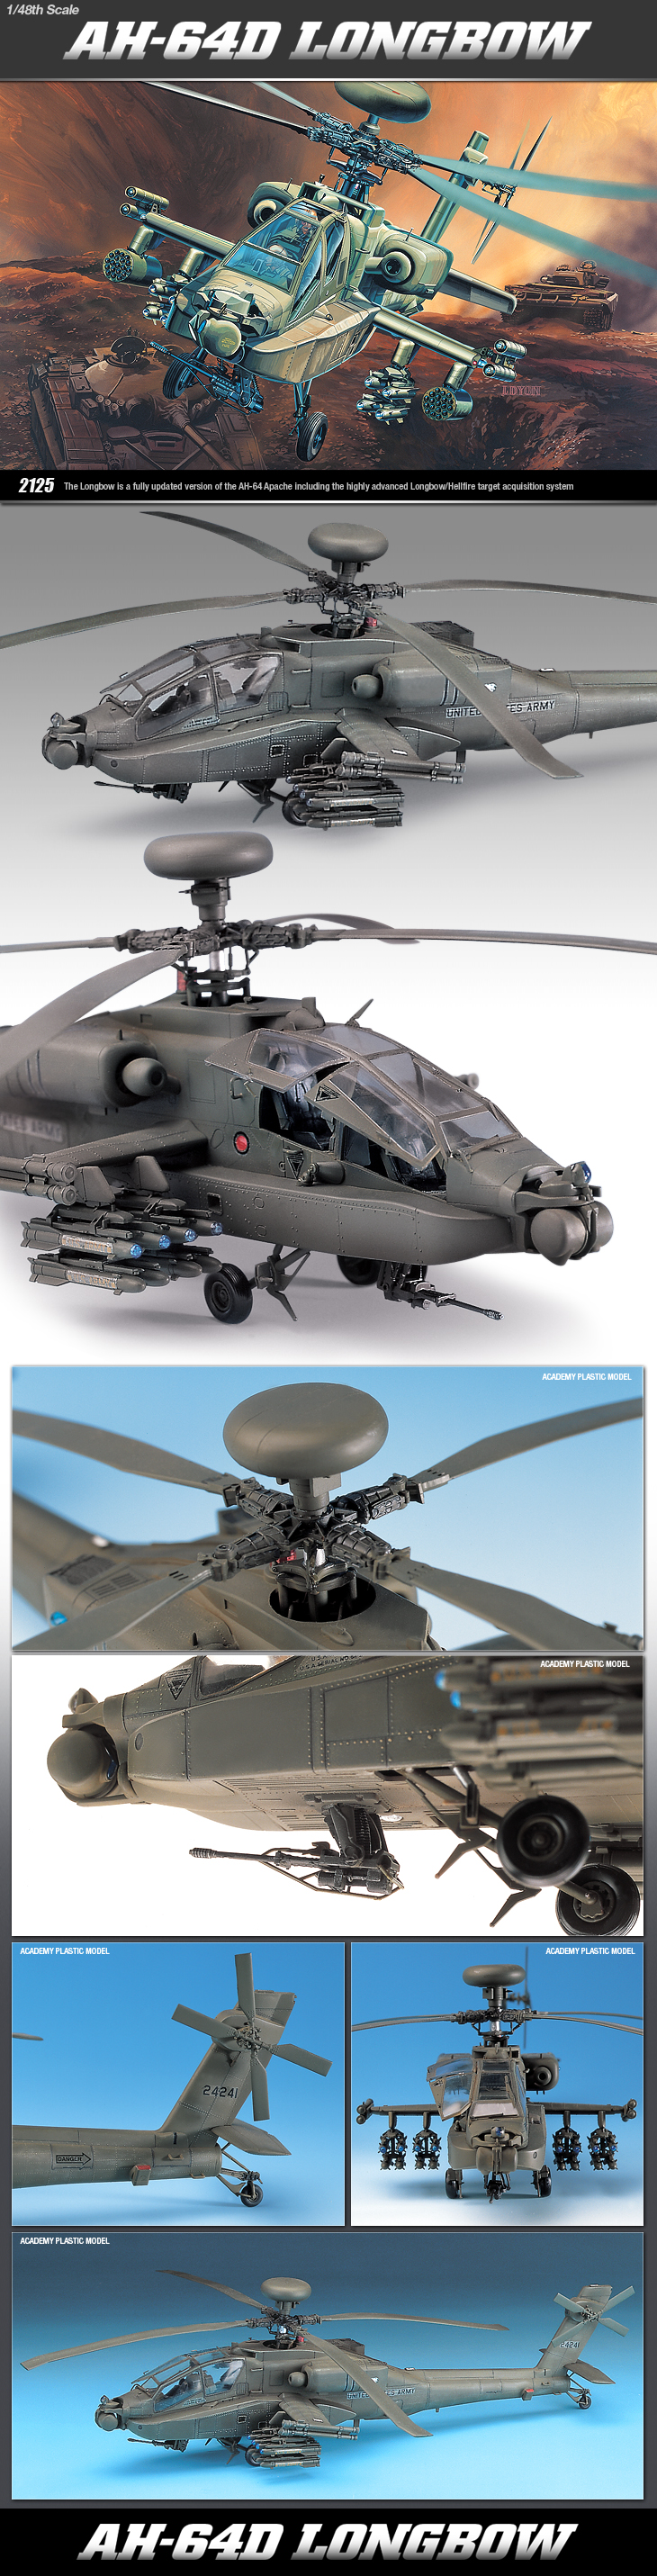 Academy 12268 1:48 AH-64D Apache US Helicopter This is an Academy 12268 1:48 AH-64D Apache US Helicopter. Markings included for one aircraft. Over 150 parts in olive green and clear with delicate recessed pane lines. Accurately reproduced rotor head, 4-blade rotor system, and mas radome. Detailed tail rotor, landing gear, chain gun, and realistic PV tires. Cockpit detail: one piece tub with side consoles, seats, instrumen panels. Full complement of Hellfire, 70mm FFAR, Stinger and Sidewinde missiles. Service History: U.S. Army; from 1983 to present. Description: Twin engine, two seat, multi-mission attack helicopter. Scale: 1:48 Rotor Diameter: 11 (27.9cm) Length: 11-1/2 (29.2cm)Condition: Factory NewOperational Status: FunctionalThis item is brand new from the factory.Original Box: YesManufacturer: AcademyModel Number: 12268MSRP: $26.50Category 1: Model KitsCategory 2: 1:48 ScaleAvailability: Ships in 3 to 5 Business Days.The Trainz SKU for this item is P12041184. Track: 12041184 - FS - 001 - TrainzAuctionGroup00UNK - TDIDUNK